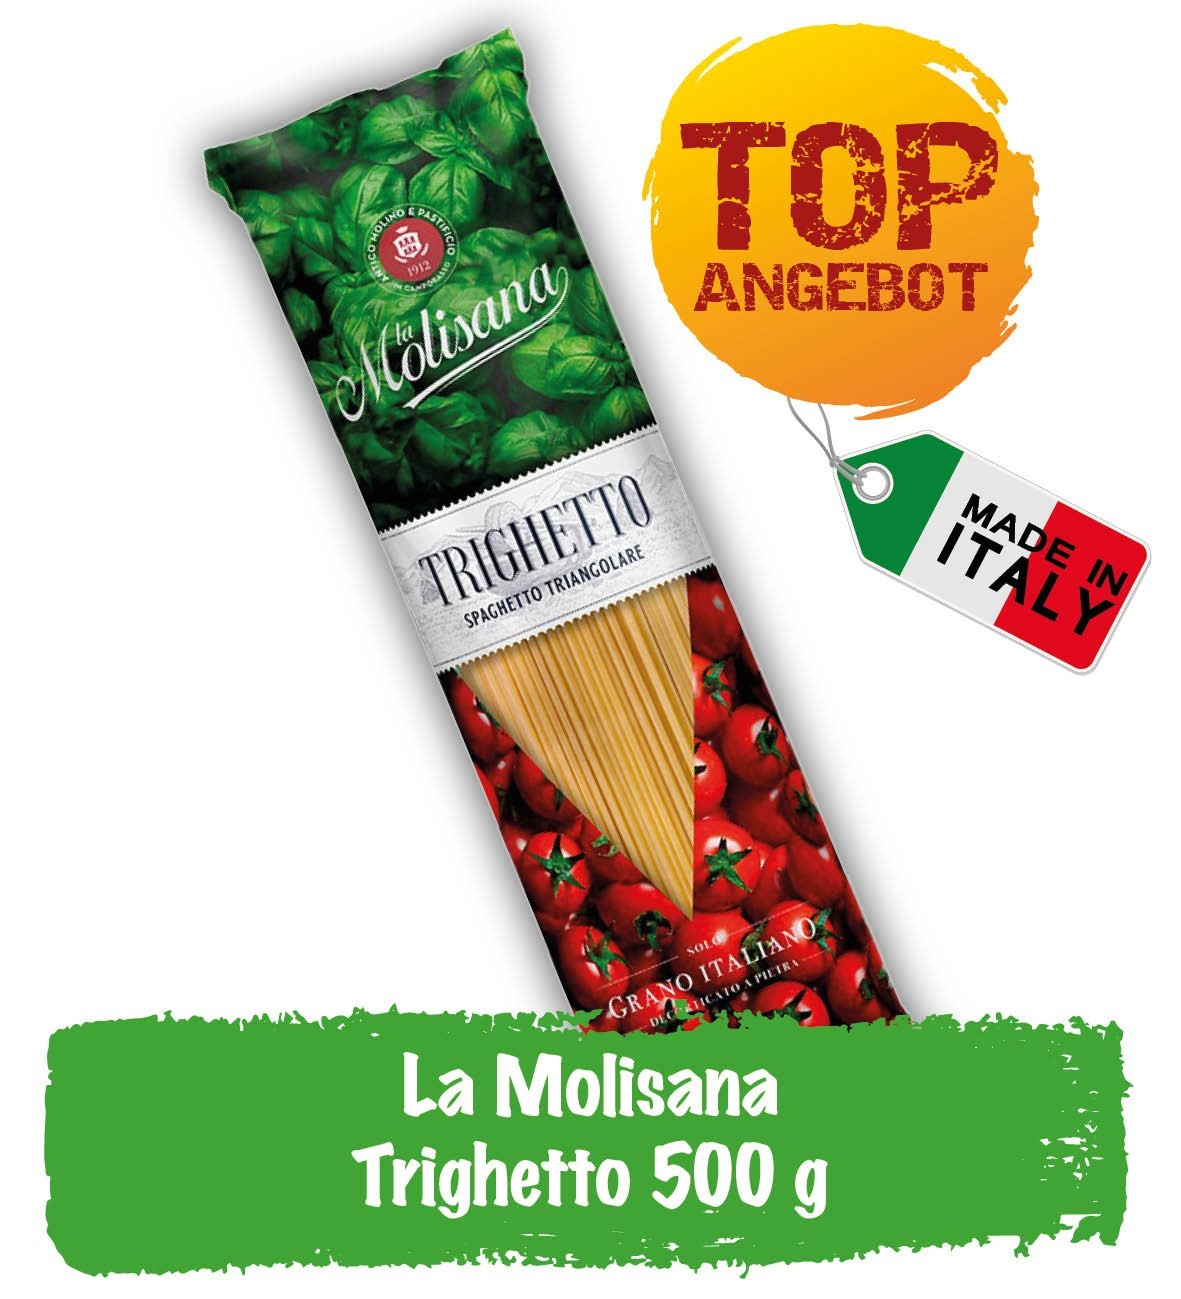 Top_La_Molisana_Trighetto